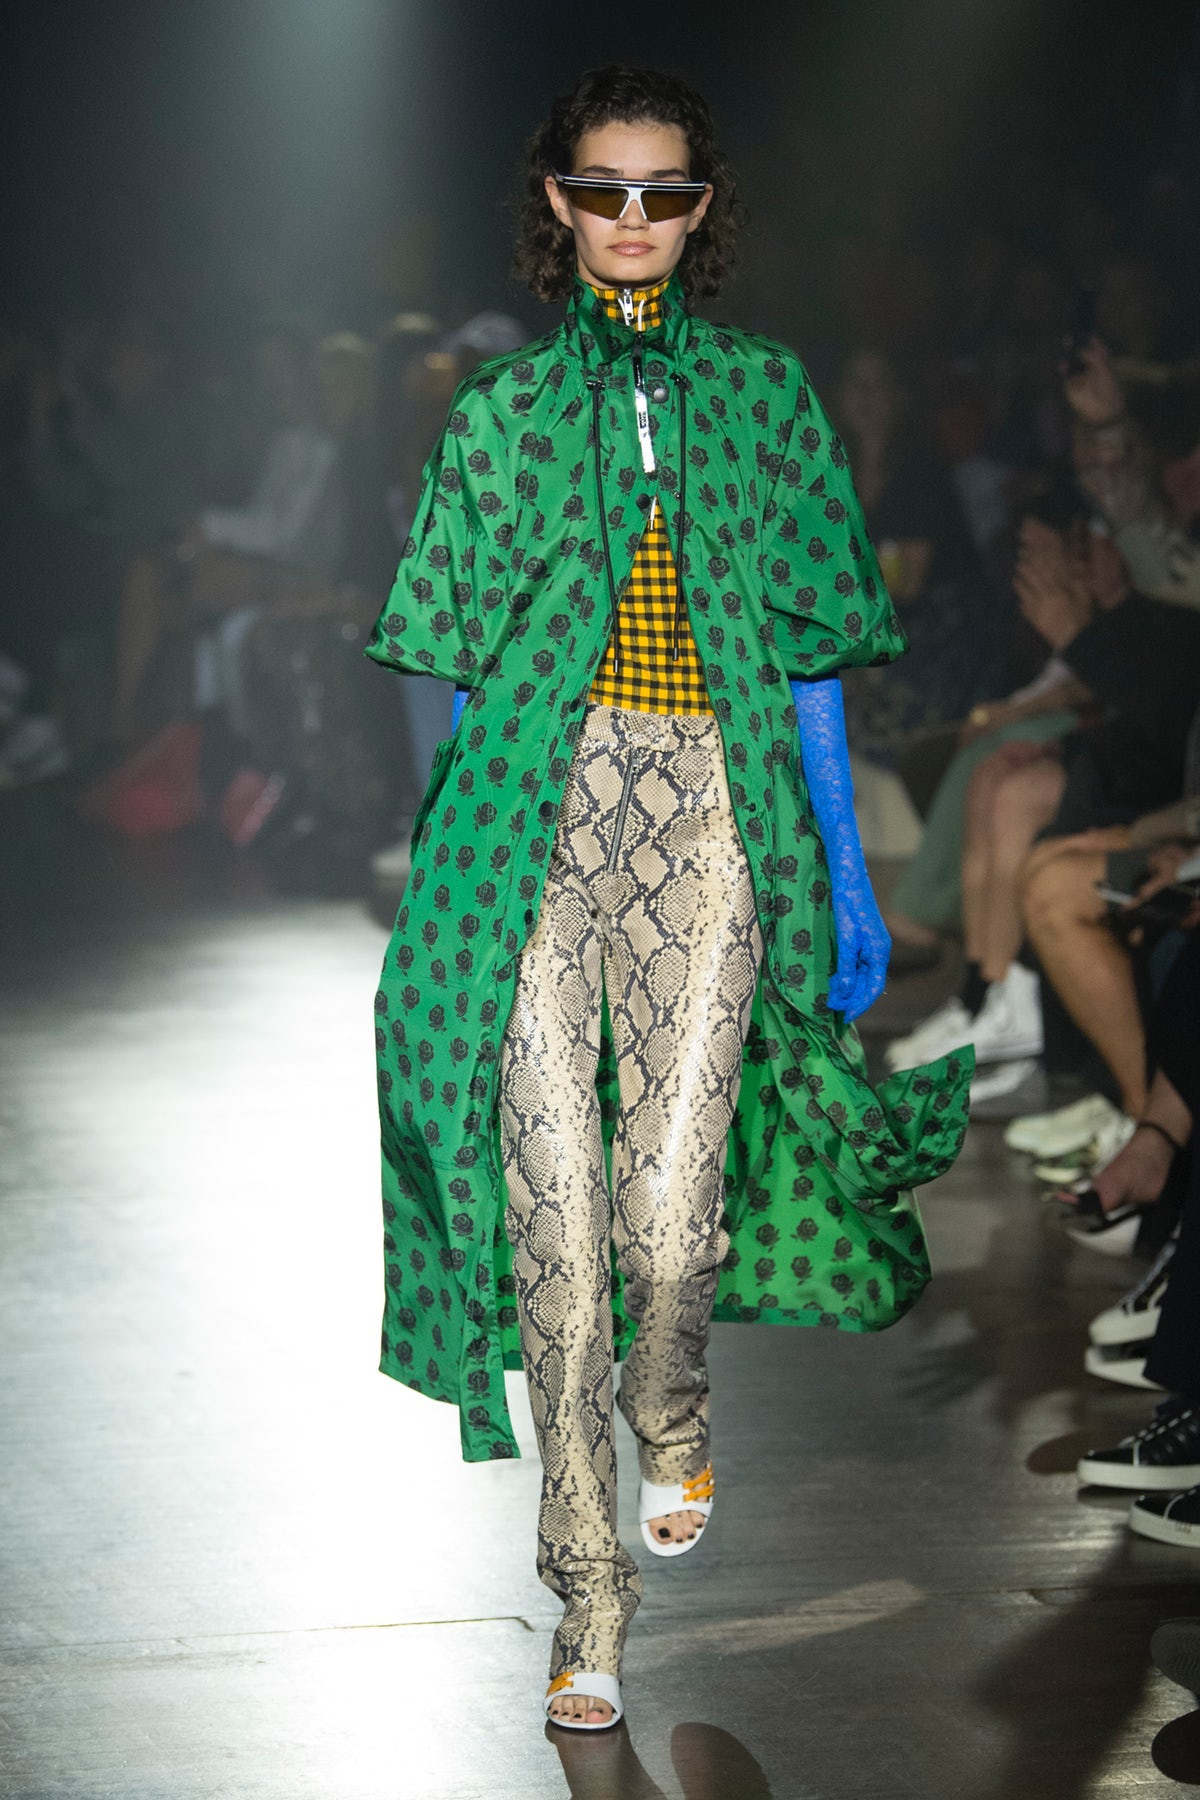 A Cheerful Straightforwardness at Kenzo